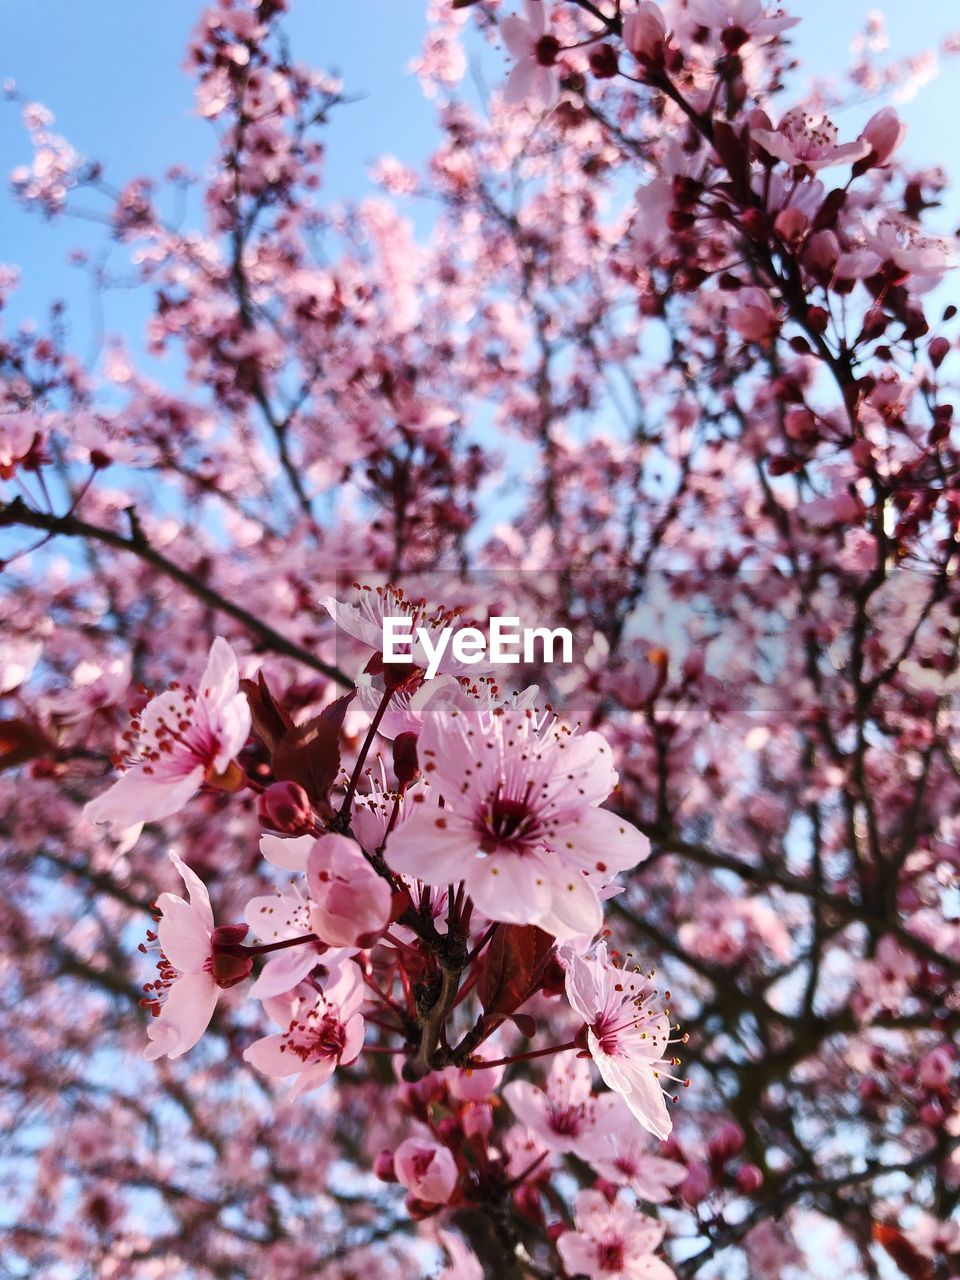 flowering plant, flower, plant, pink color, growth, fragility, freshness, vulnerability, beauty in nature, tree, blossom, cherry blossom, springtime, branch, low angle view, nature, petal, day, cherry tree, close-up, no people, flower head, pollen, outdoors, bunch of flowers, plum blossom, spring